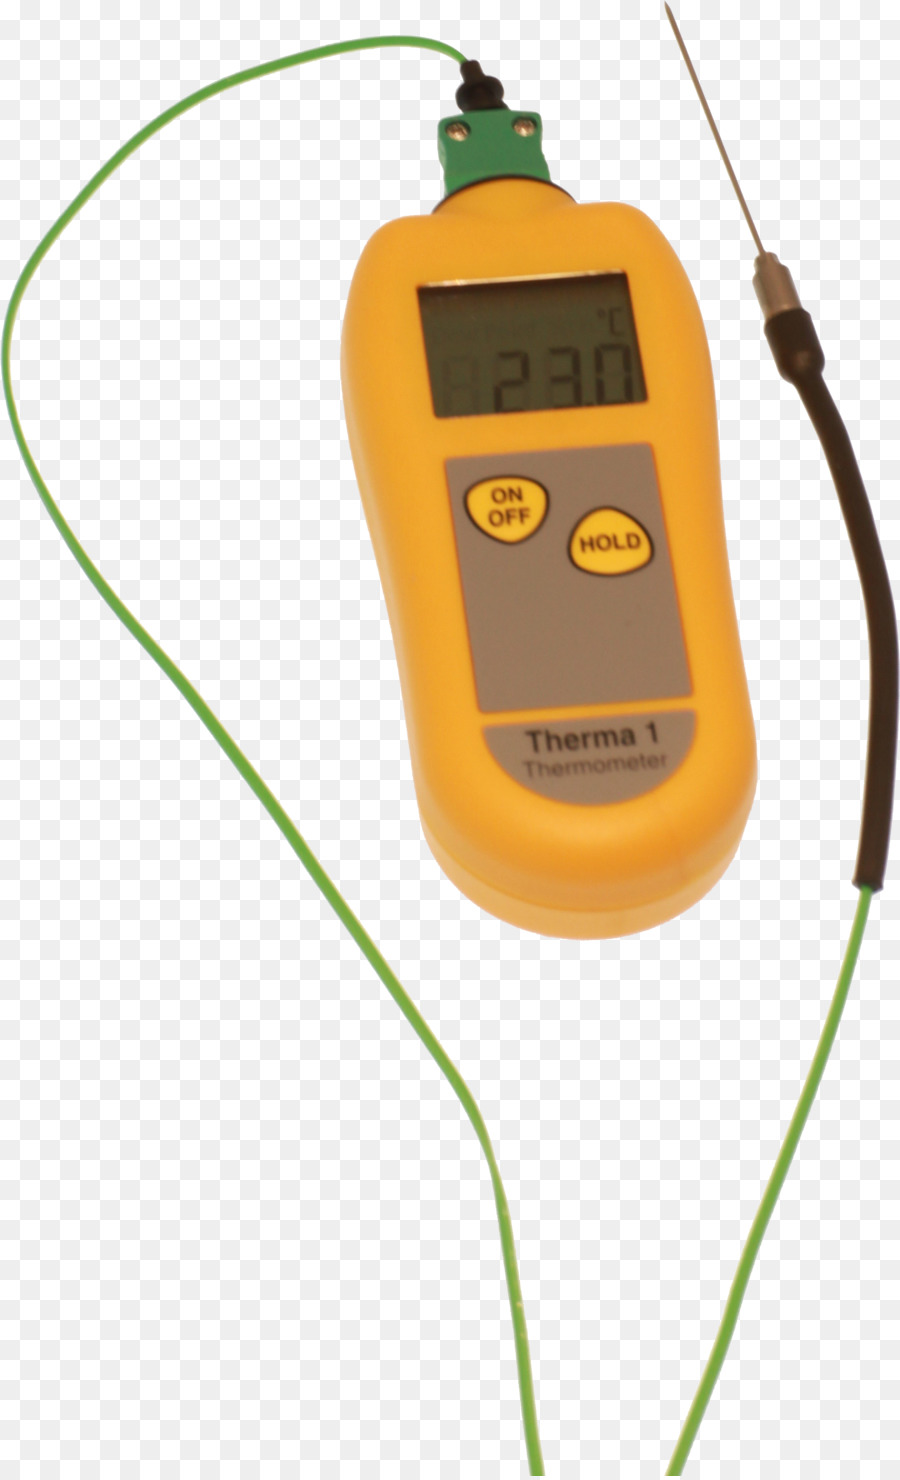 Thermometer Yellow png download - 2294*3762 - Free Transparent